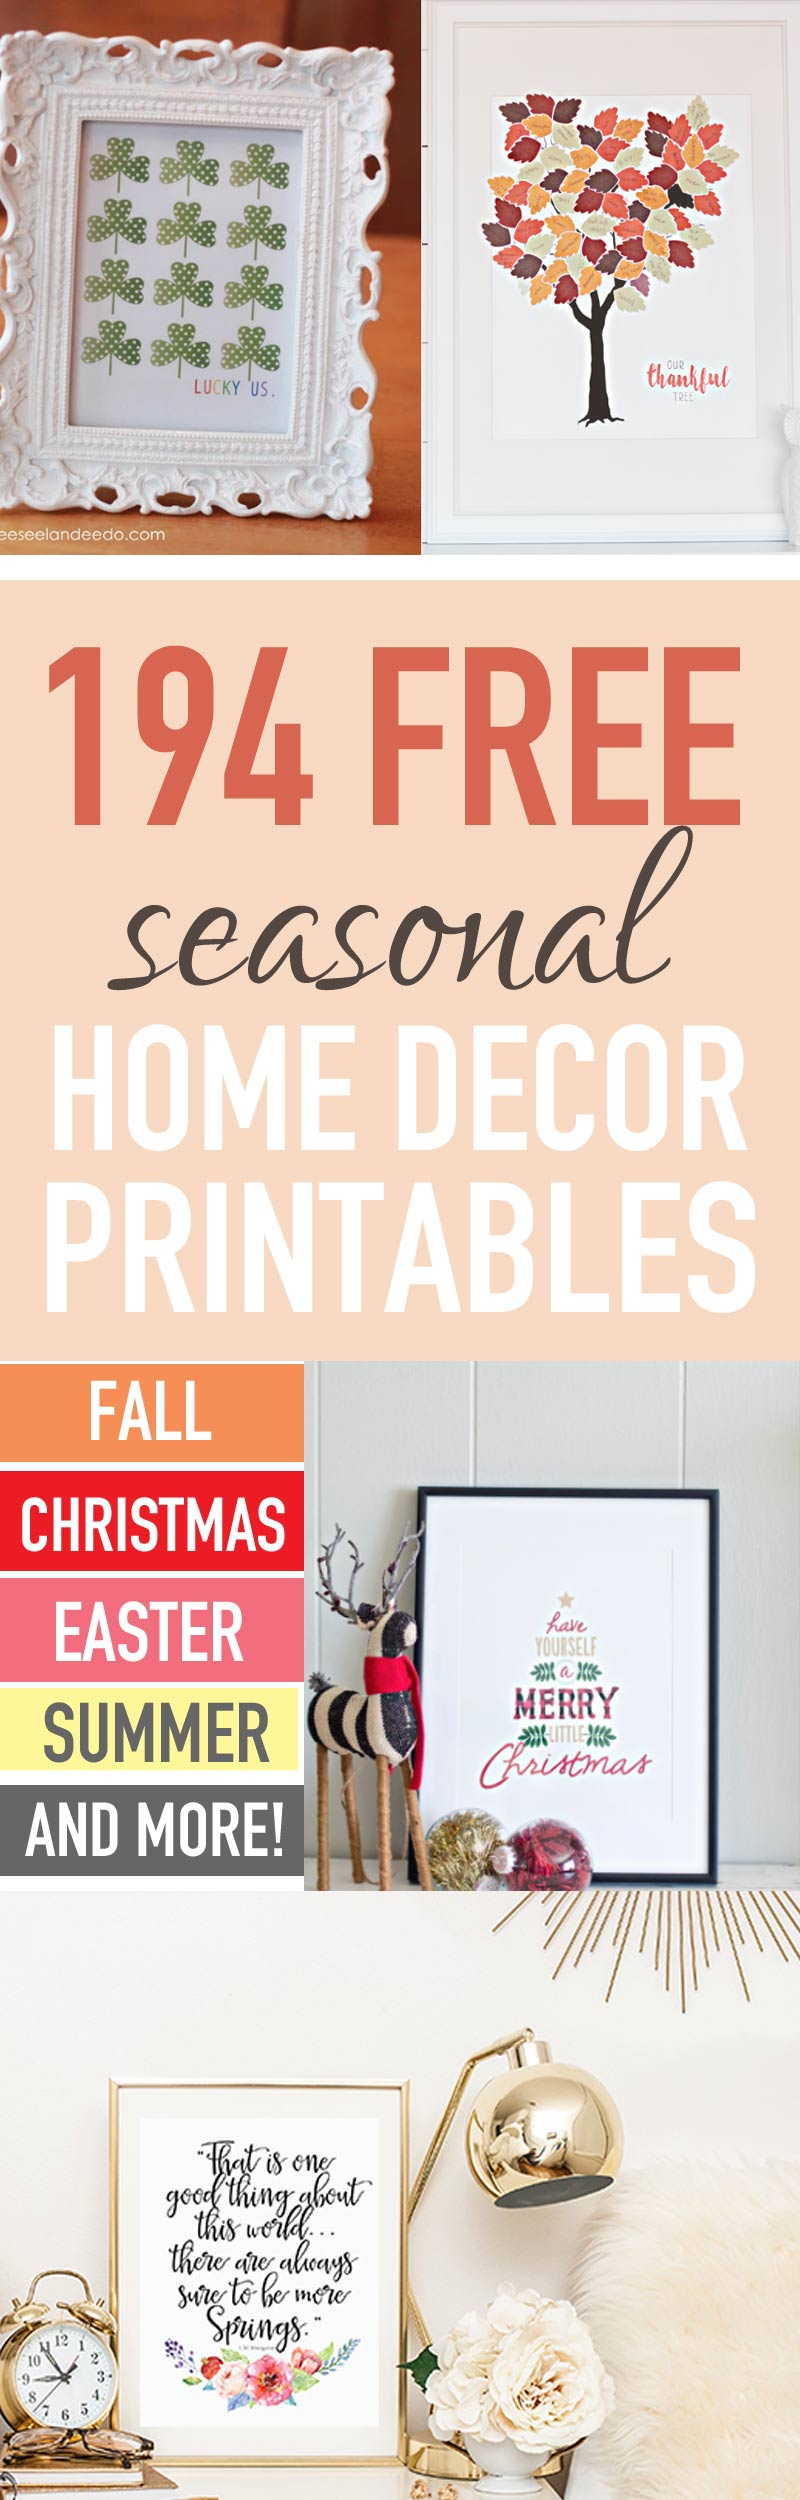 decorate my home for free how to decorate your home seasonally for free 257 12056